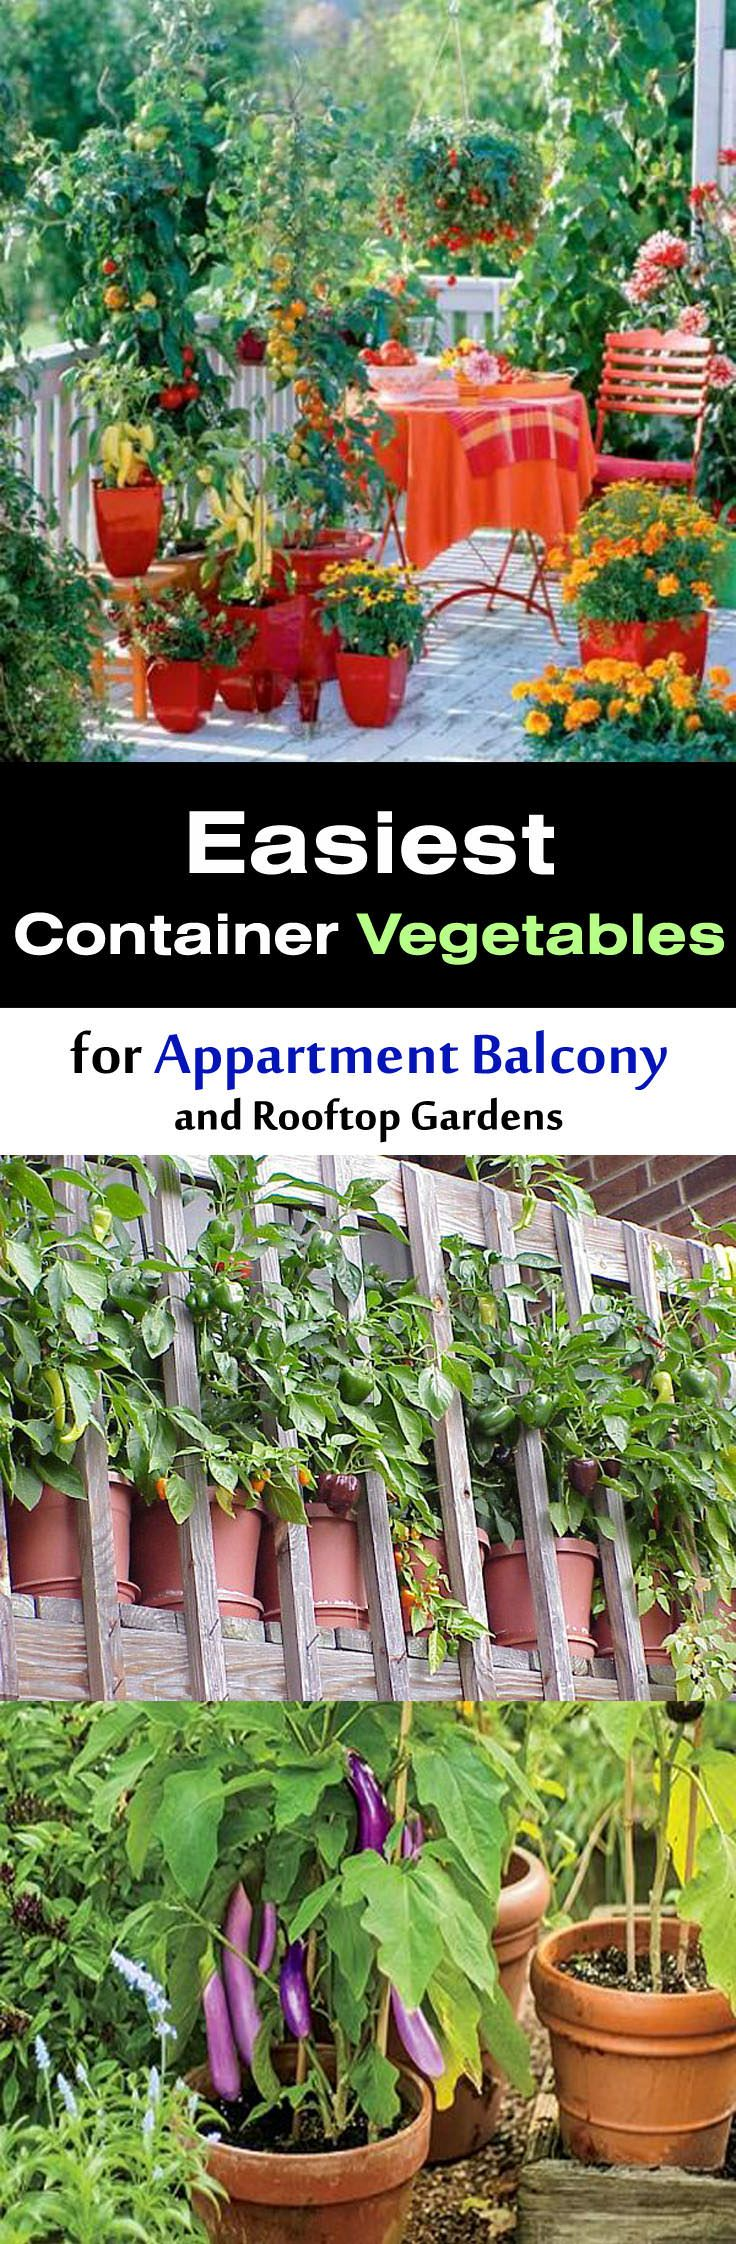 Easiest Vegetables For Balcony Rooftop Garden Apartment